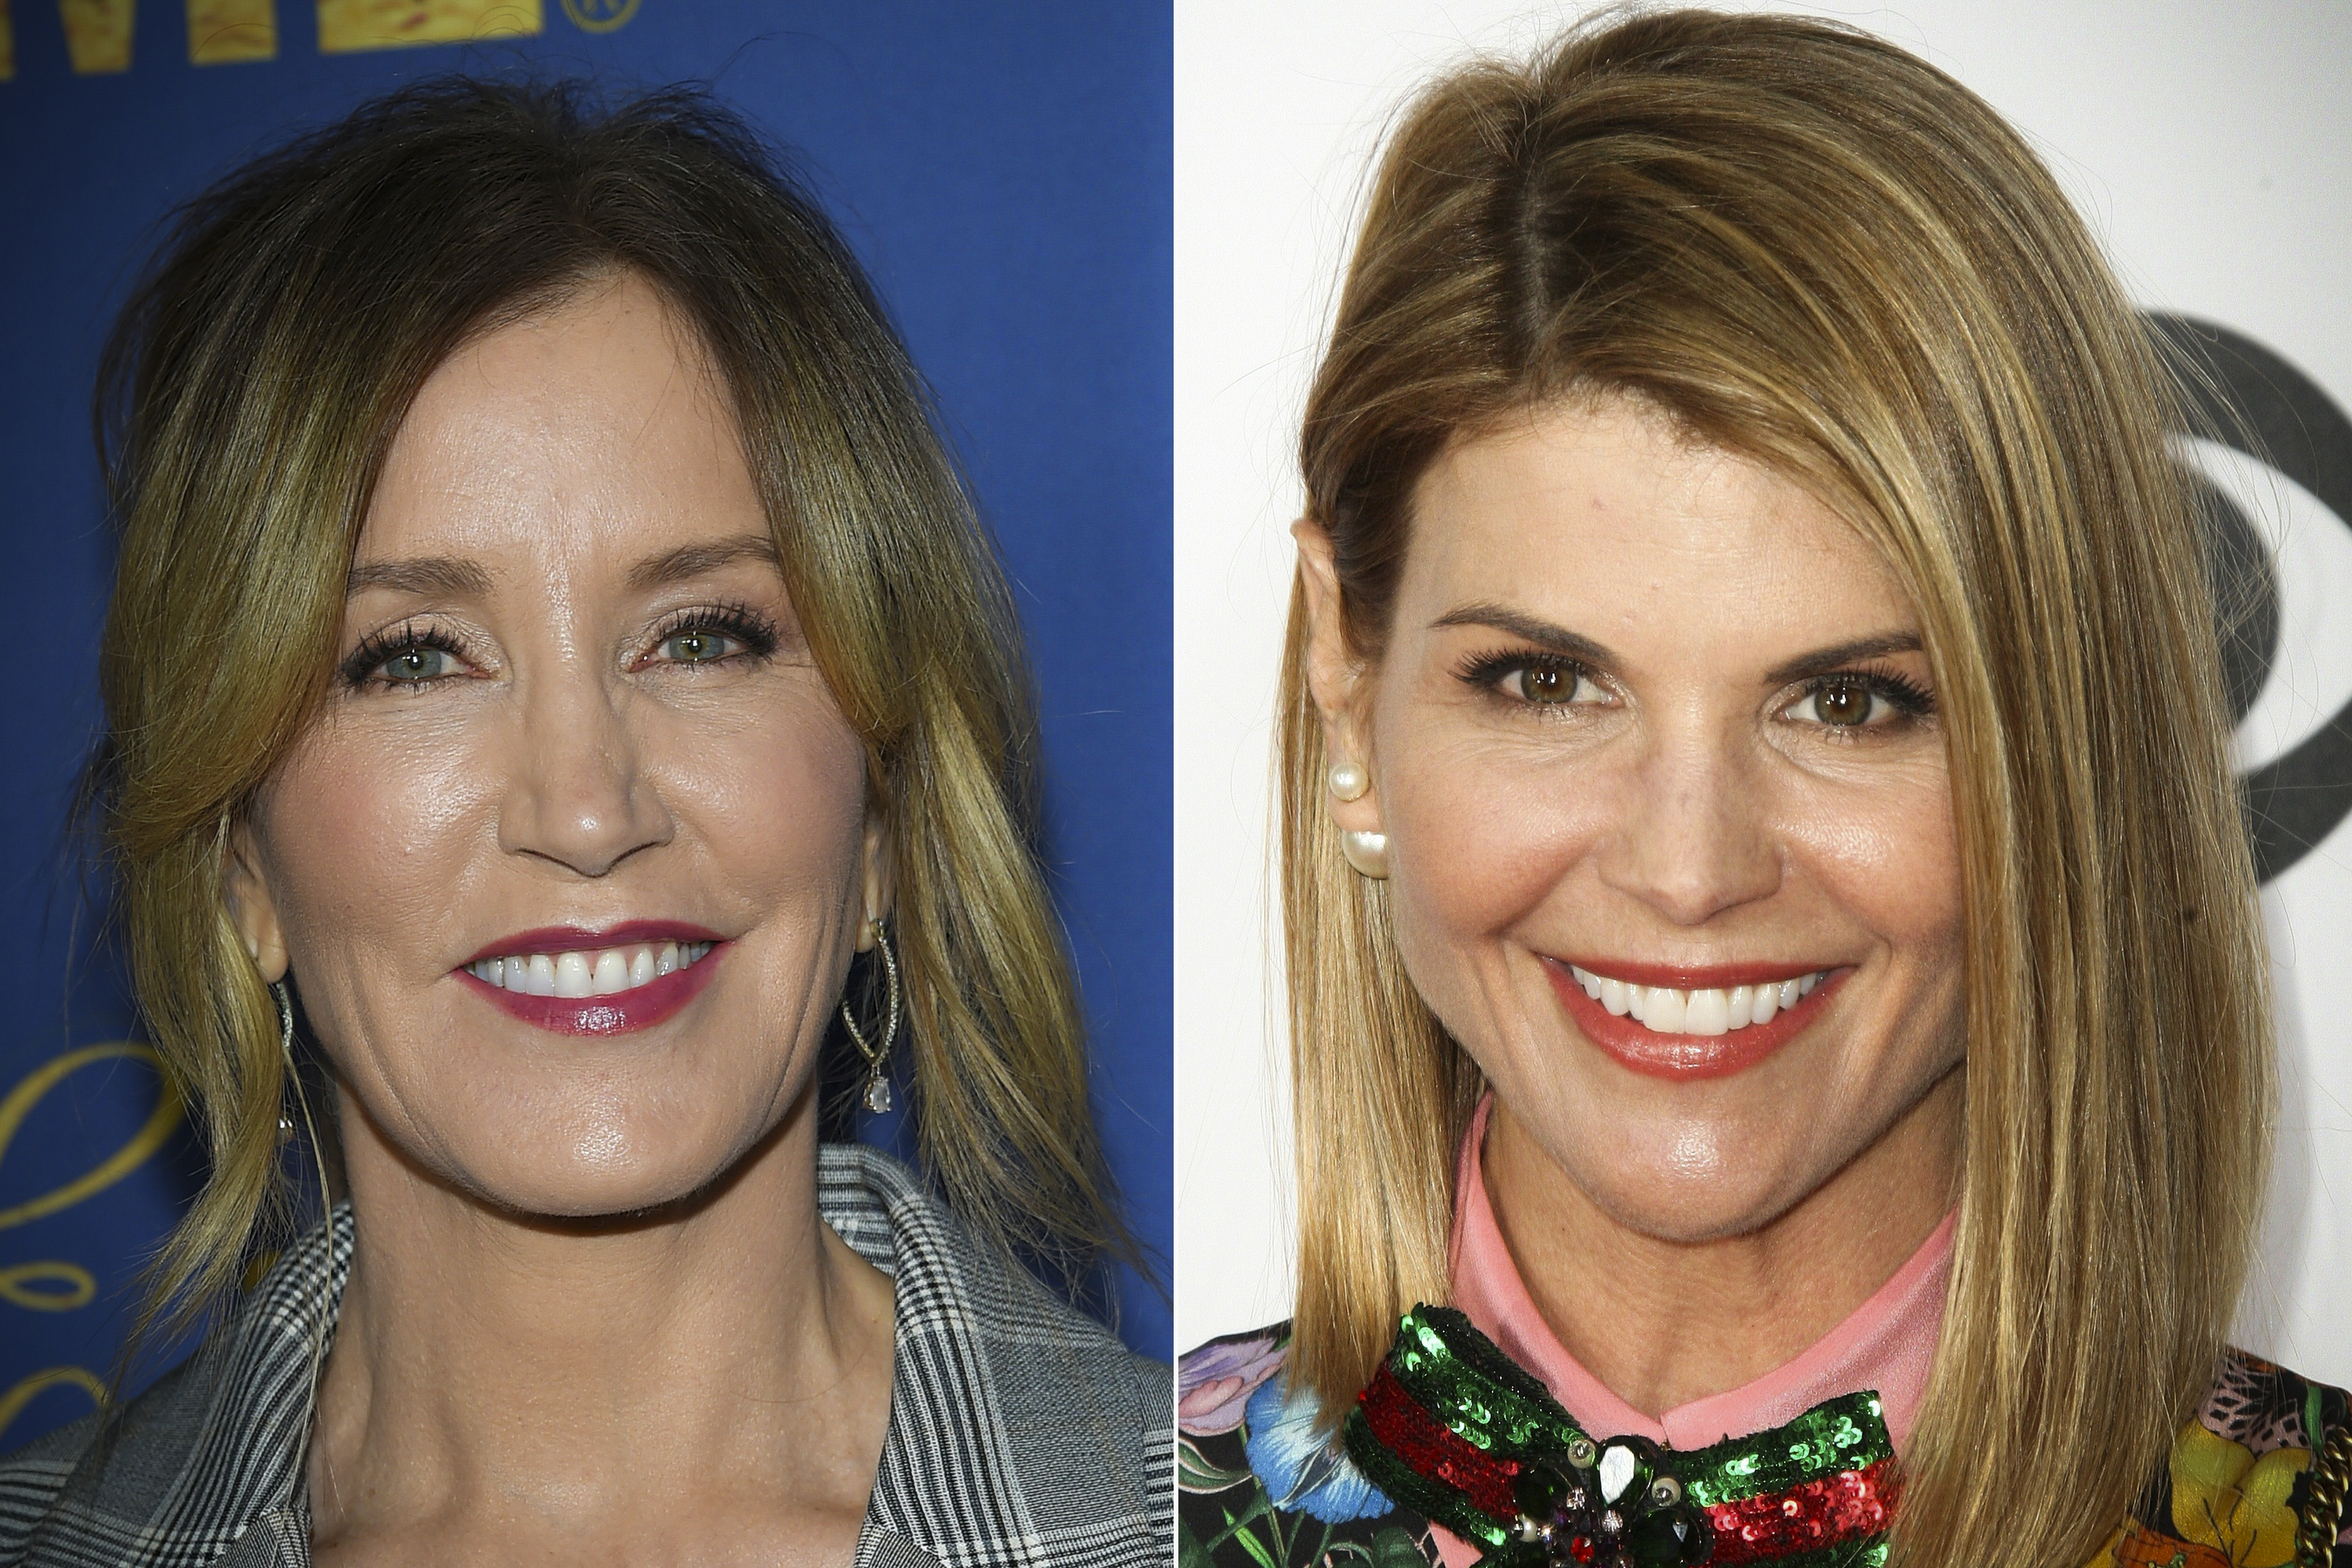 Lori Loughlin, Felicity Huffman among 50 charged in FBI college admissions fraud case